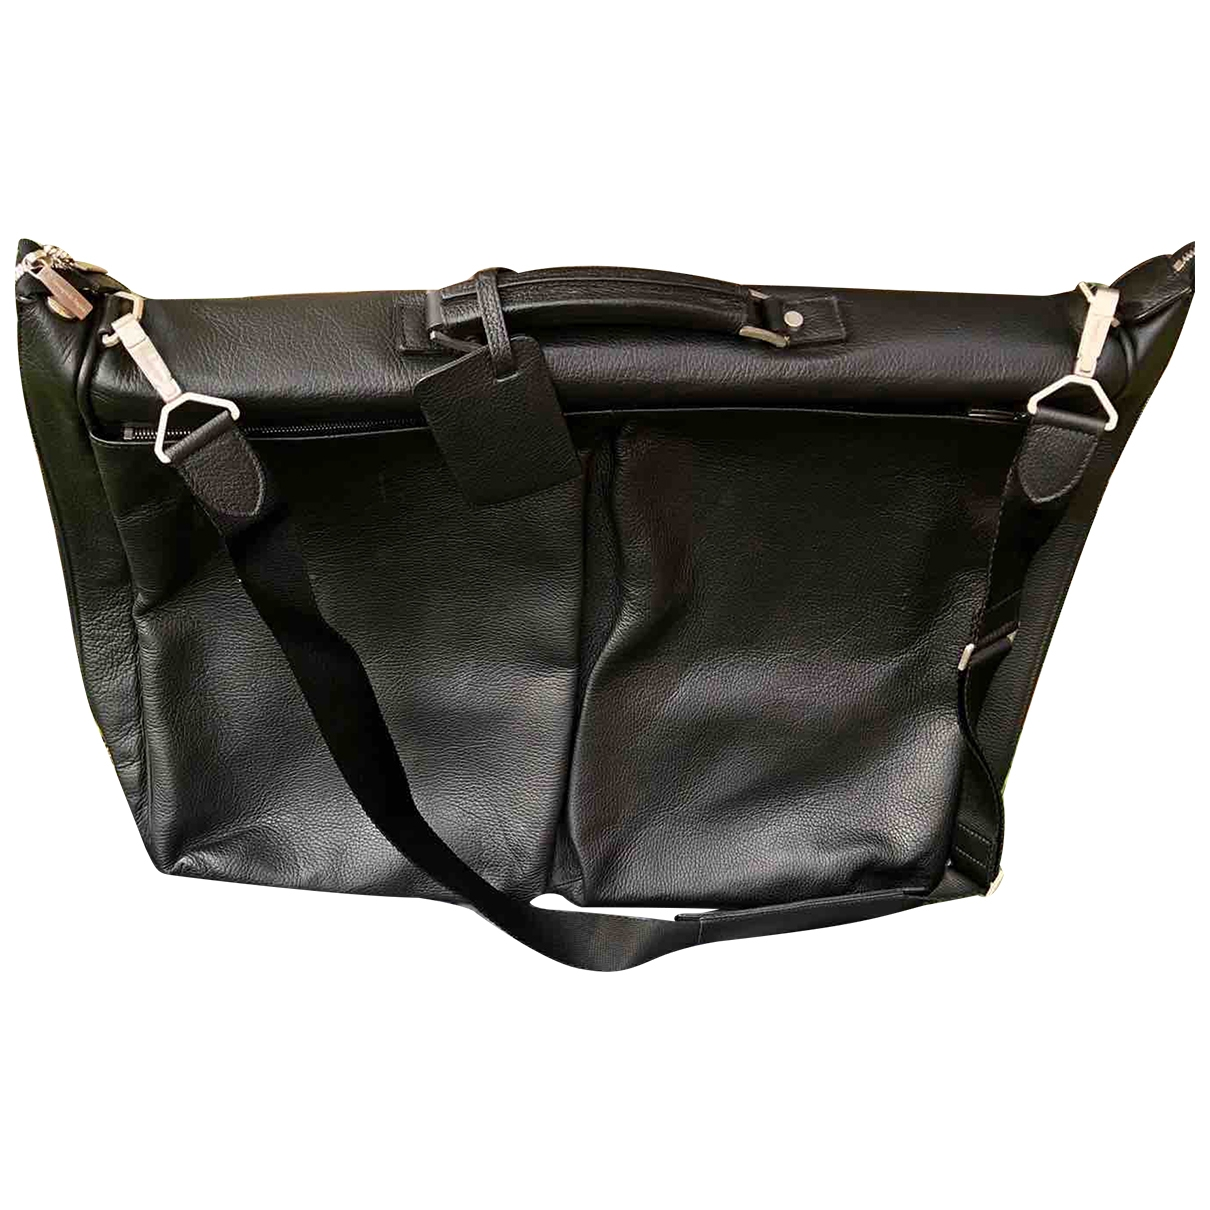 Ermenegildo Zegna \N Black Leather bag for Men \N